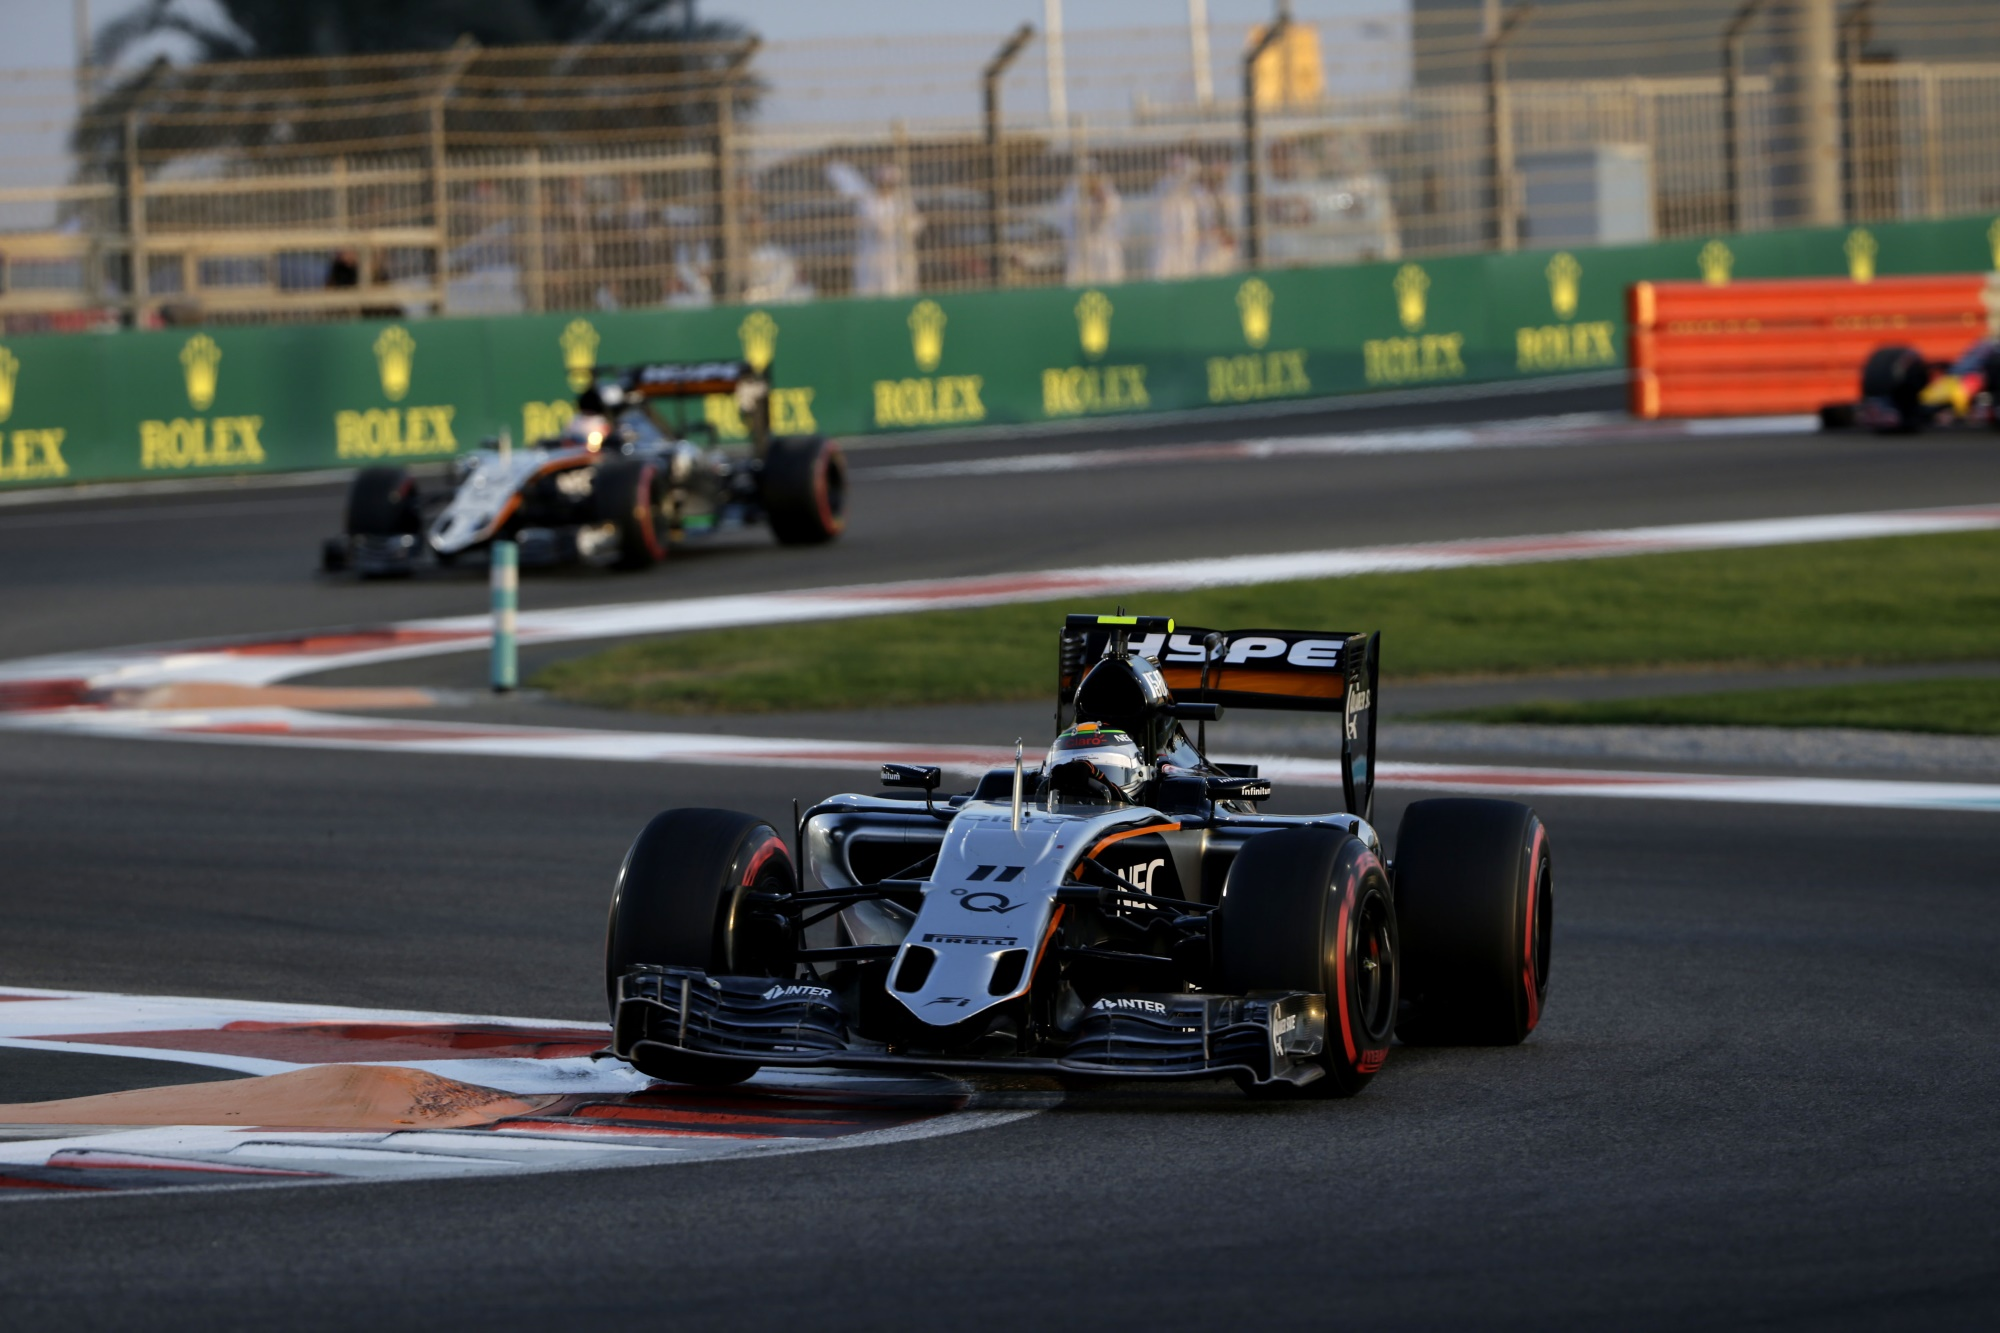 perez-leads-hulkenberg-force-india-abu-dhabi-gp-f1-2015.